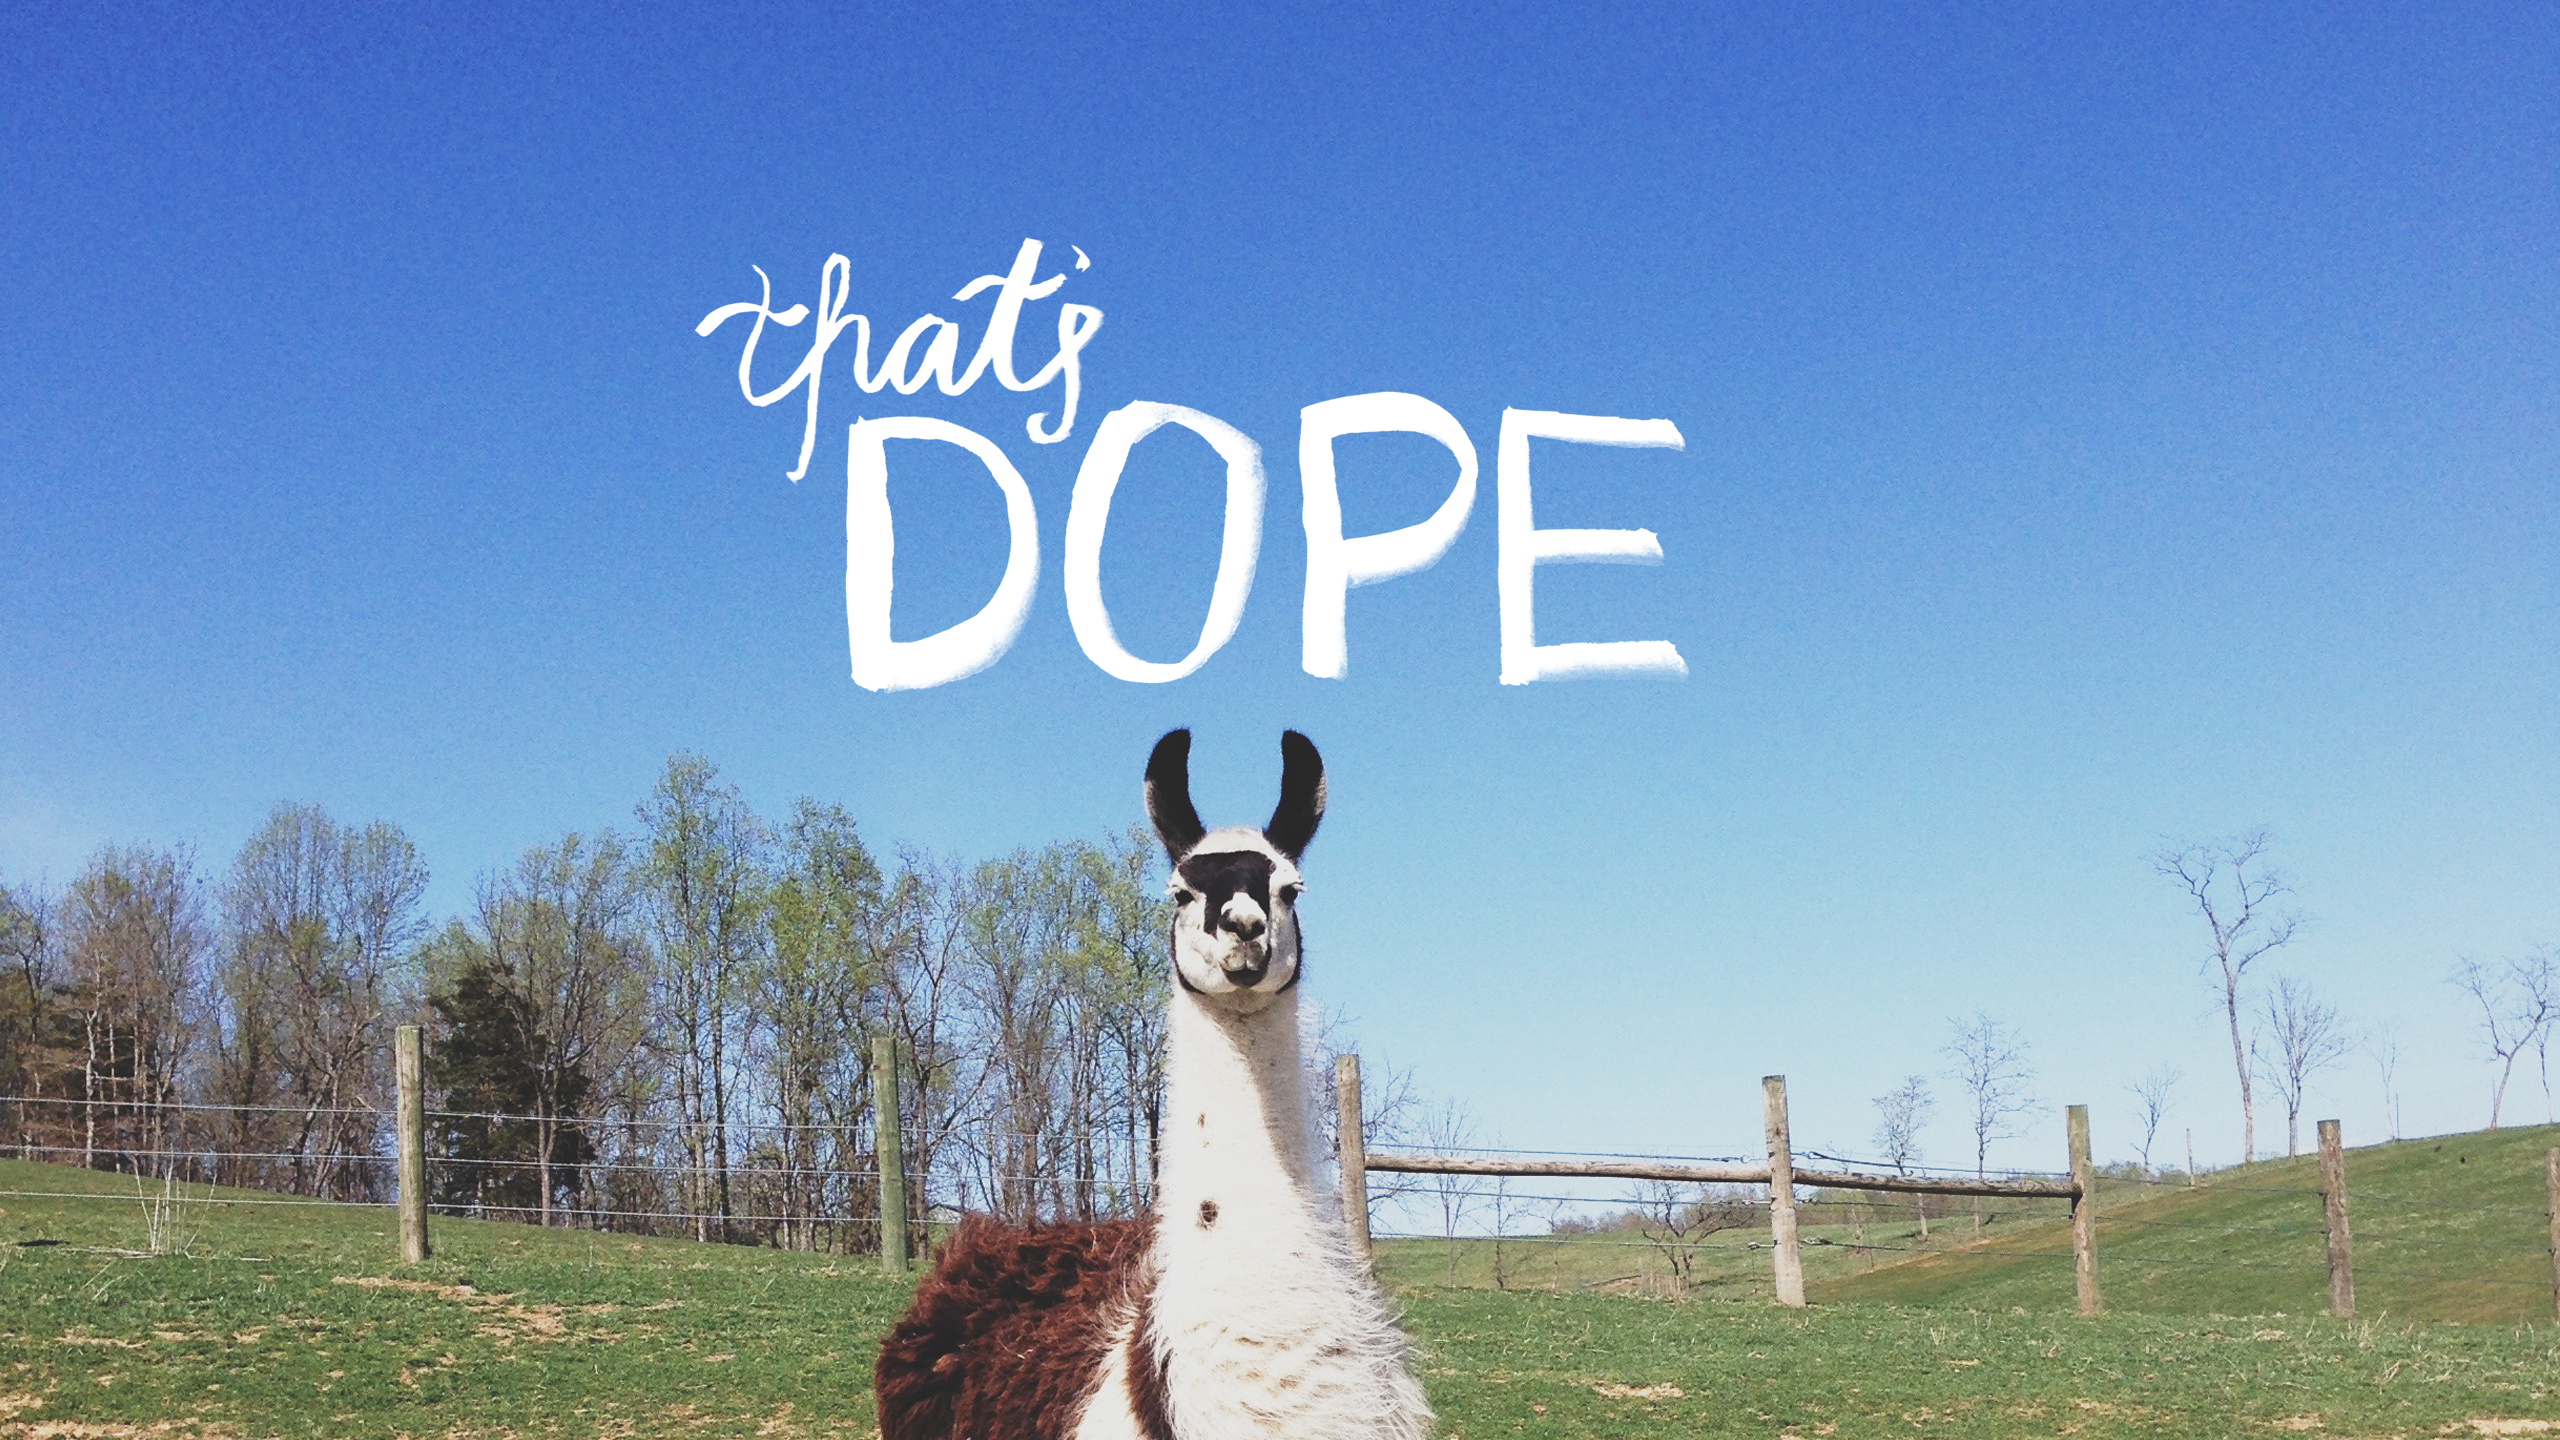 Interesting Llama HDQ Images Collection: 39994914, 2560x1440 px